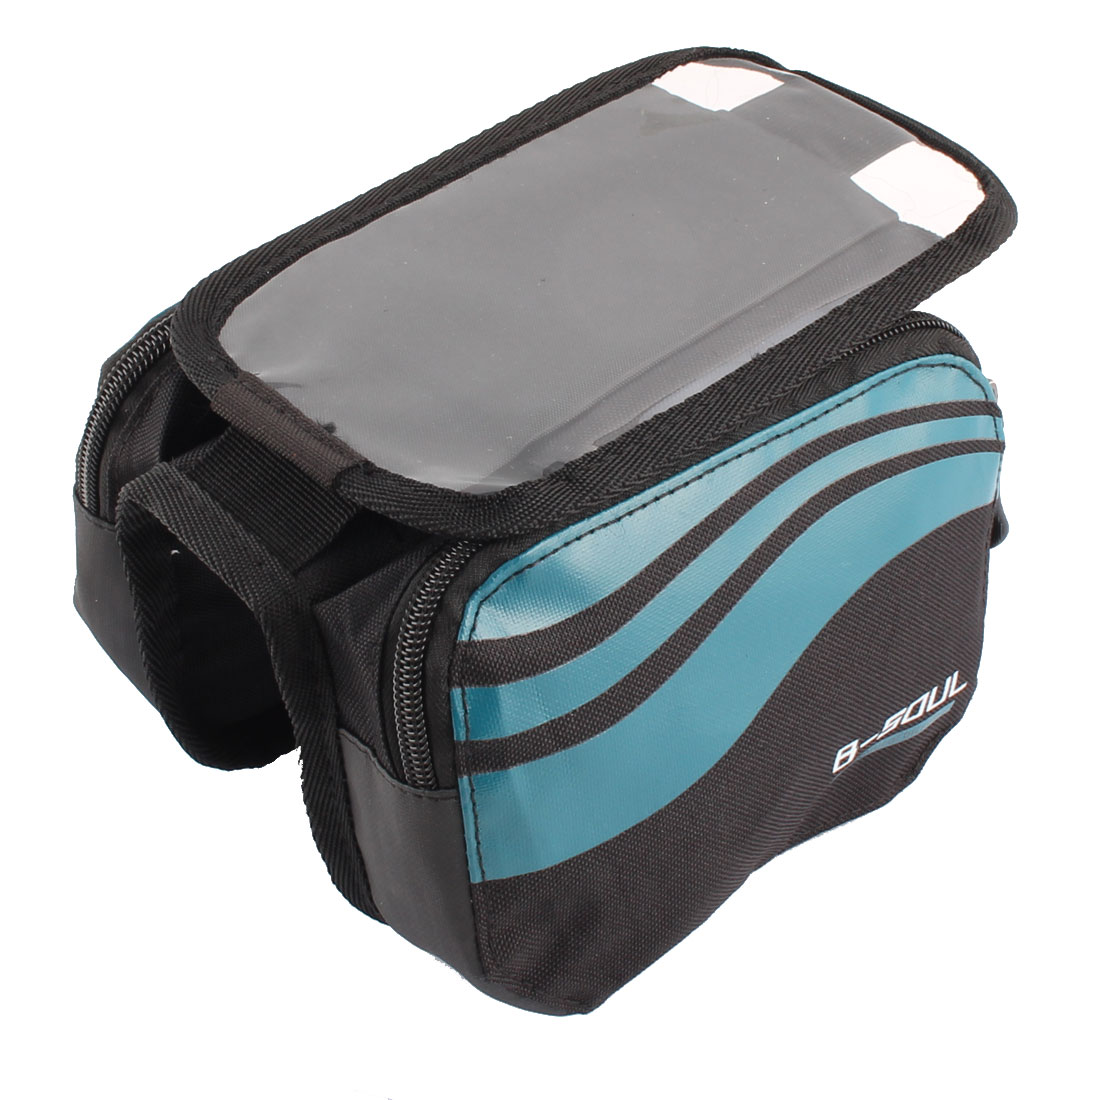 Outdoor Travel Mountain Bike Bicycle Front Tube Bag Storage B-SOUL Authorized